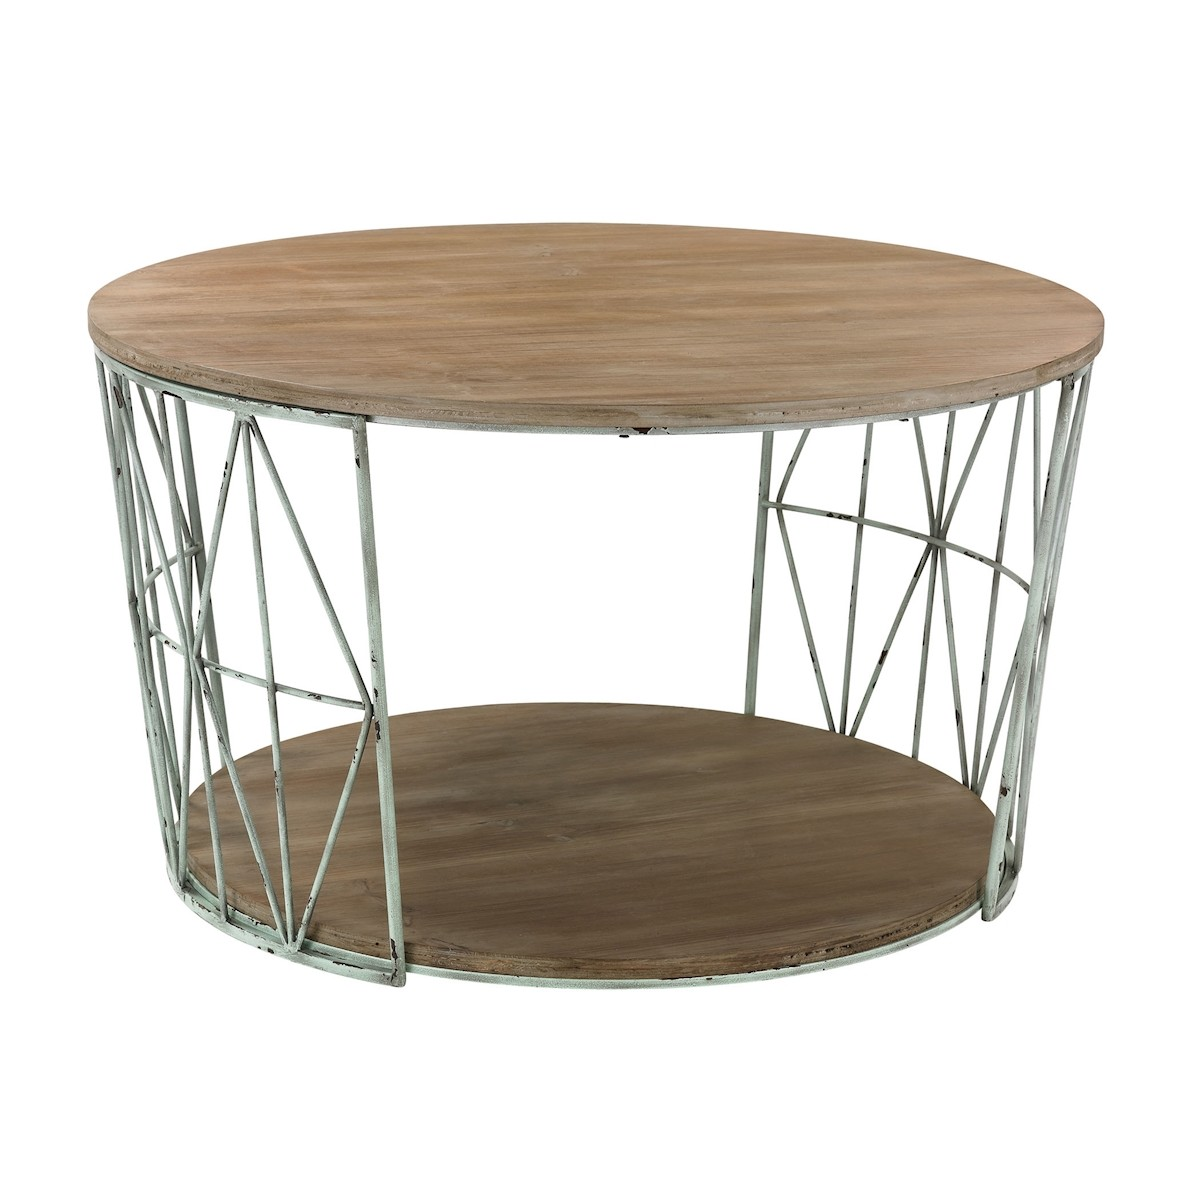 Round Cocktail Table in Wood and Metal | Elk Home